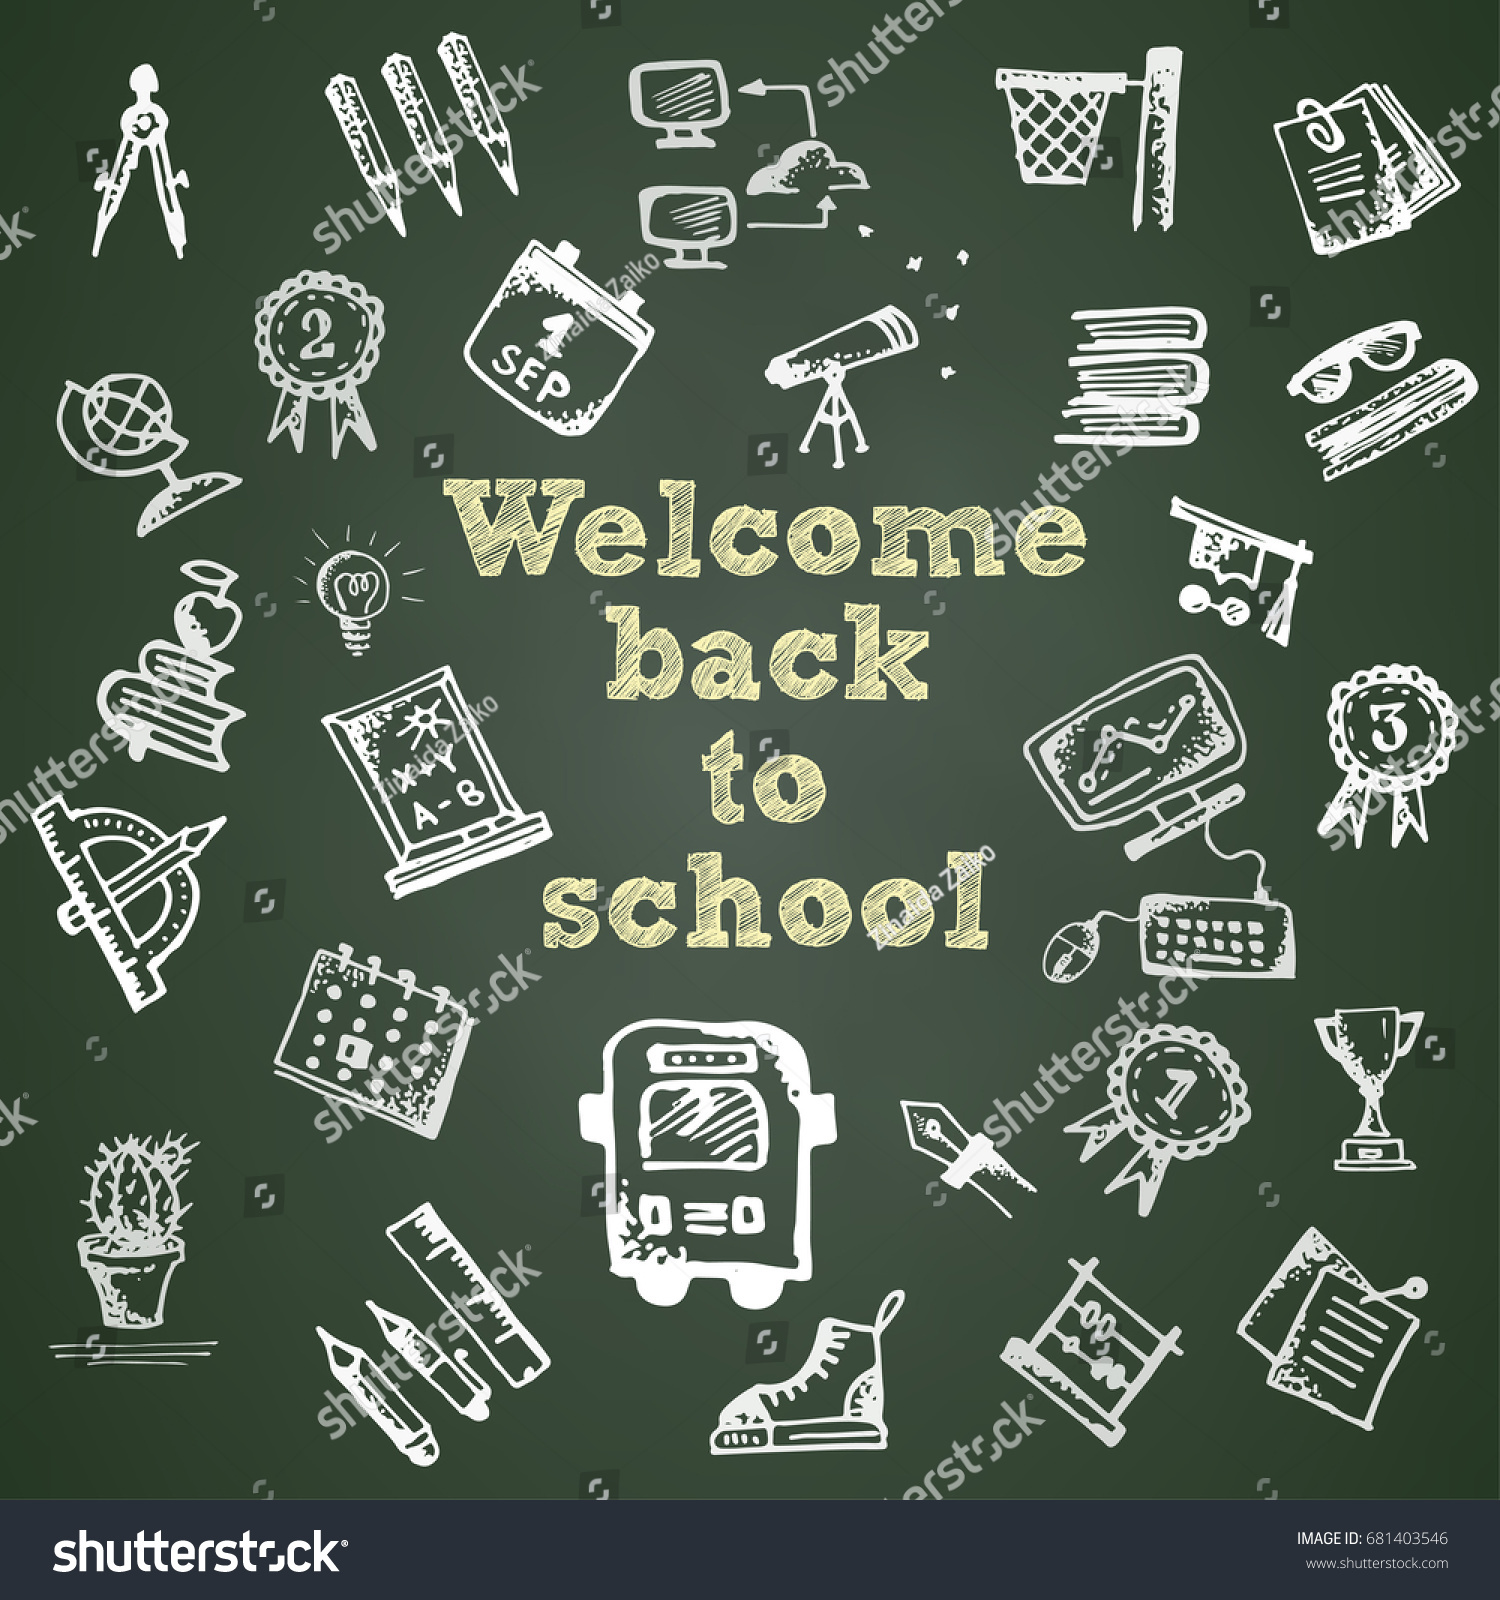 Hand drawn school symbol on green stock vector 681403546 shutterstock hand drawn school symbol on green chalkboard with text welcome back to school vector illustration buycottarizona Gallery